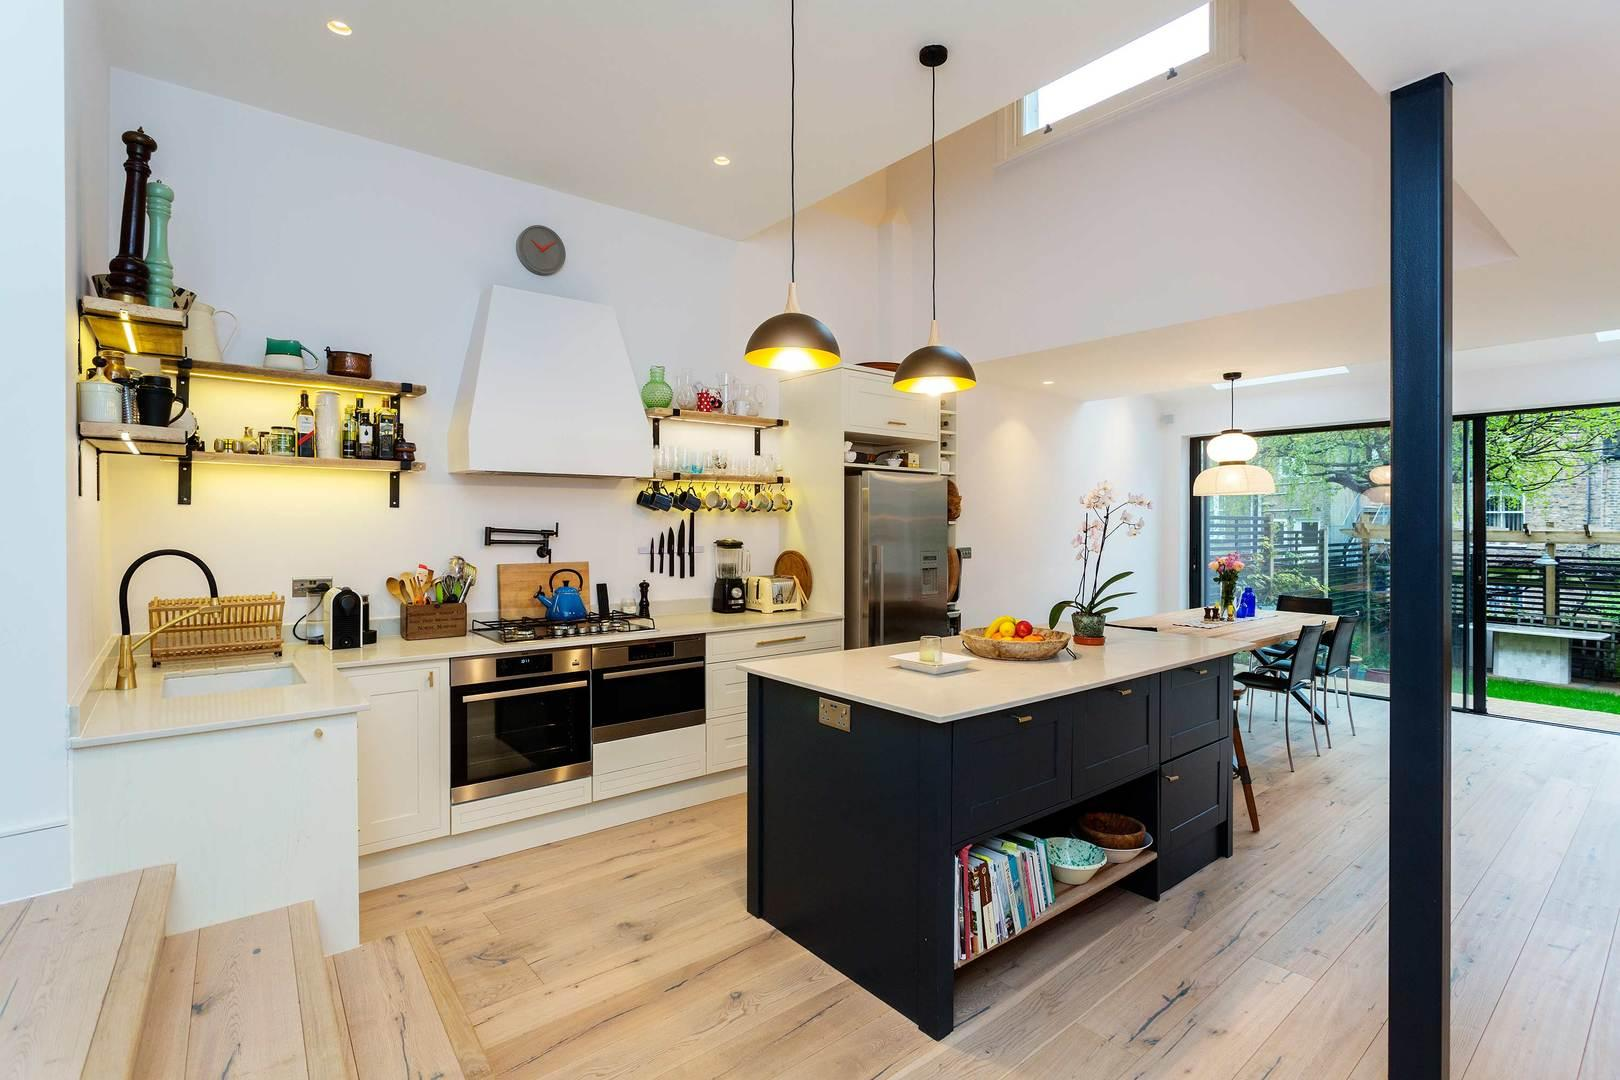 Property Image 1 - 4 bedroom Dalston House with Excellent Social Spaces